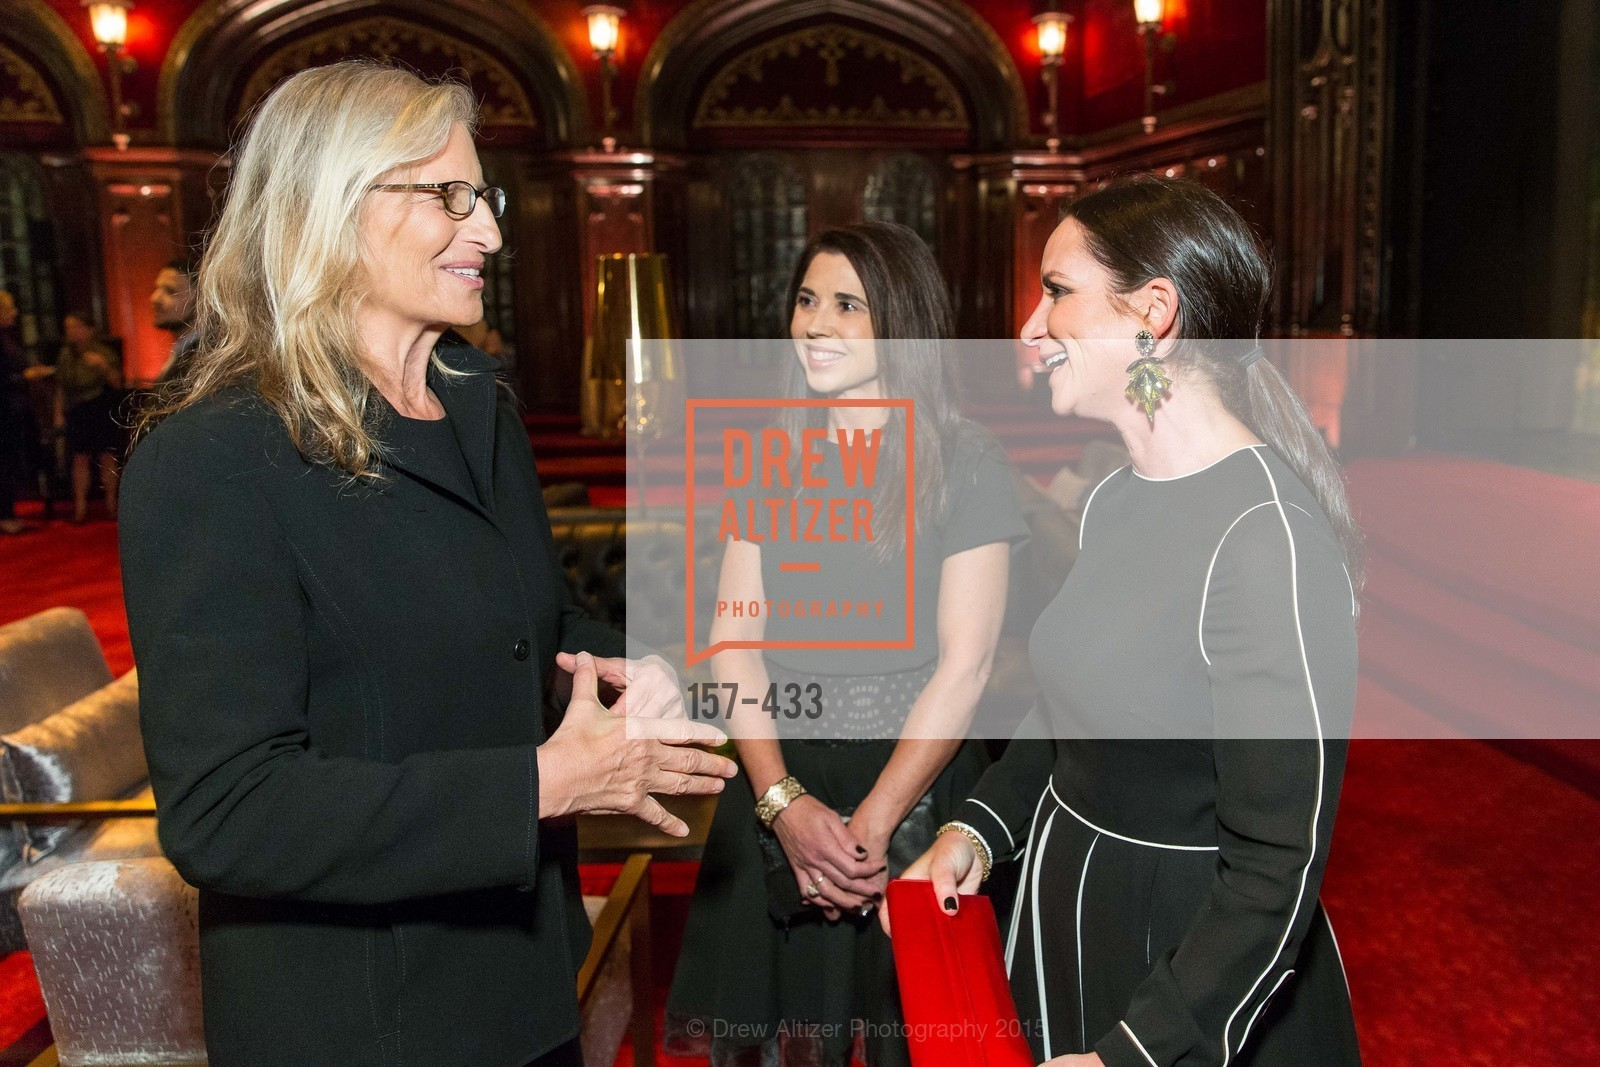 Annie Leibovitz, Candace Cavanaugh, Courtney Dallaire, SFMOMA Contemporary Vision Award, Regency Ballroom. 1300 Van Ness, November 3rd, 2015,Drew Altizer, Drew Altizer Photography, full-service agency, private events, San Francisco photographer, photographer california